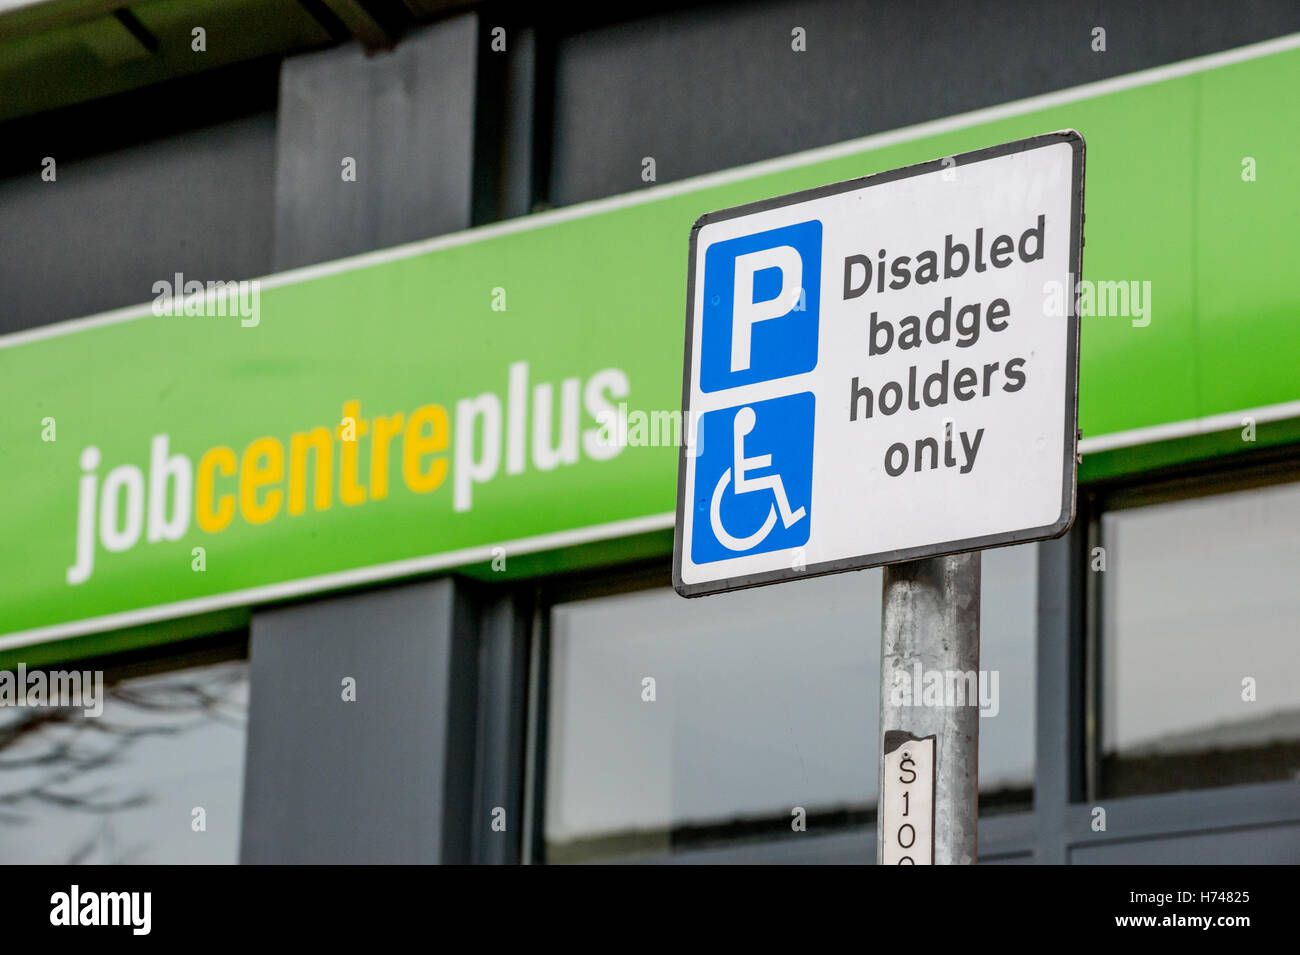 Disabled badge holder sign in front of Job Centre Plus Office, Doncaster Stock Photo